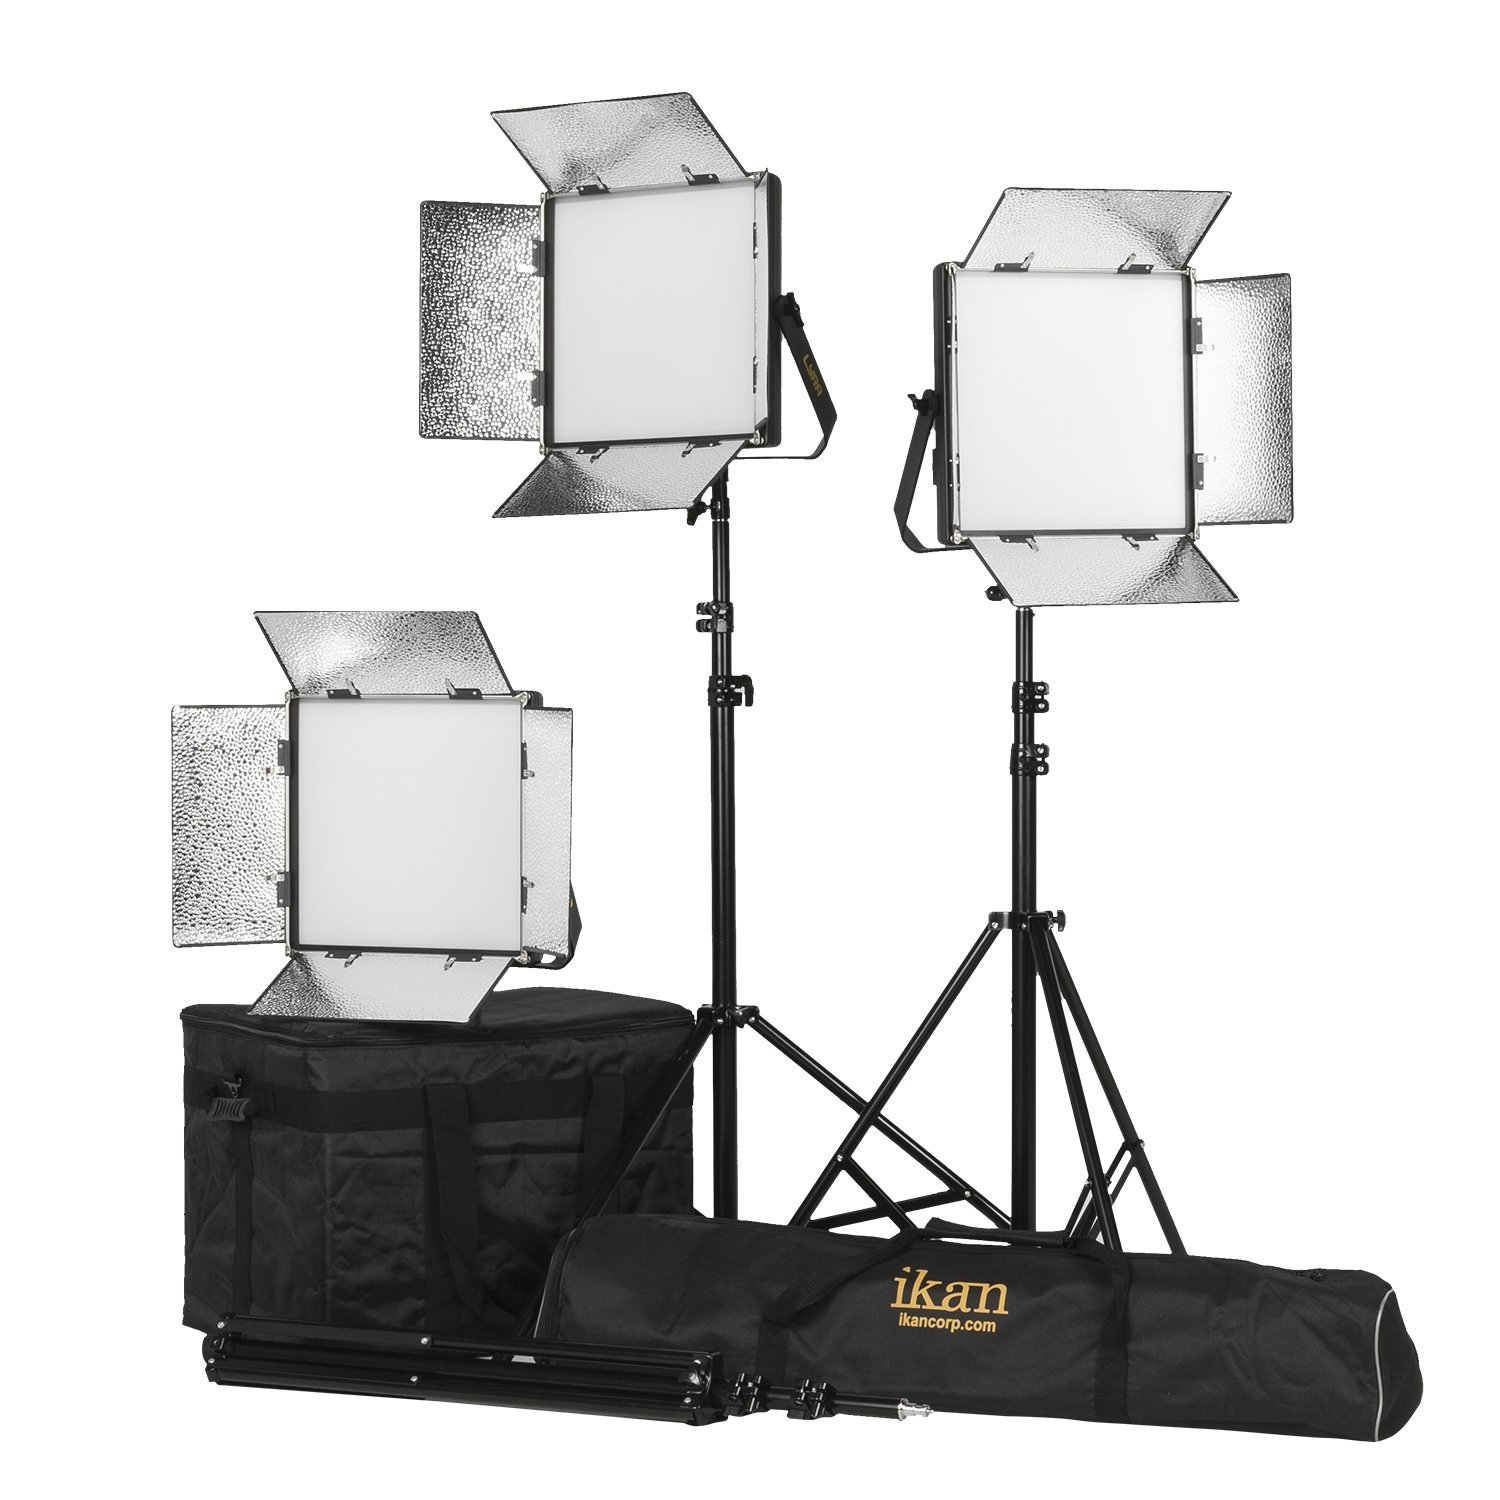 Ikan LB10-3PT-KIT 3-Point Soft Panel LED Light Kit  with Gold & V-Mount Battery Plate, Black